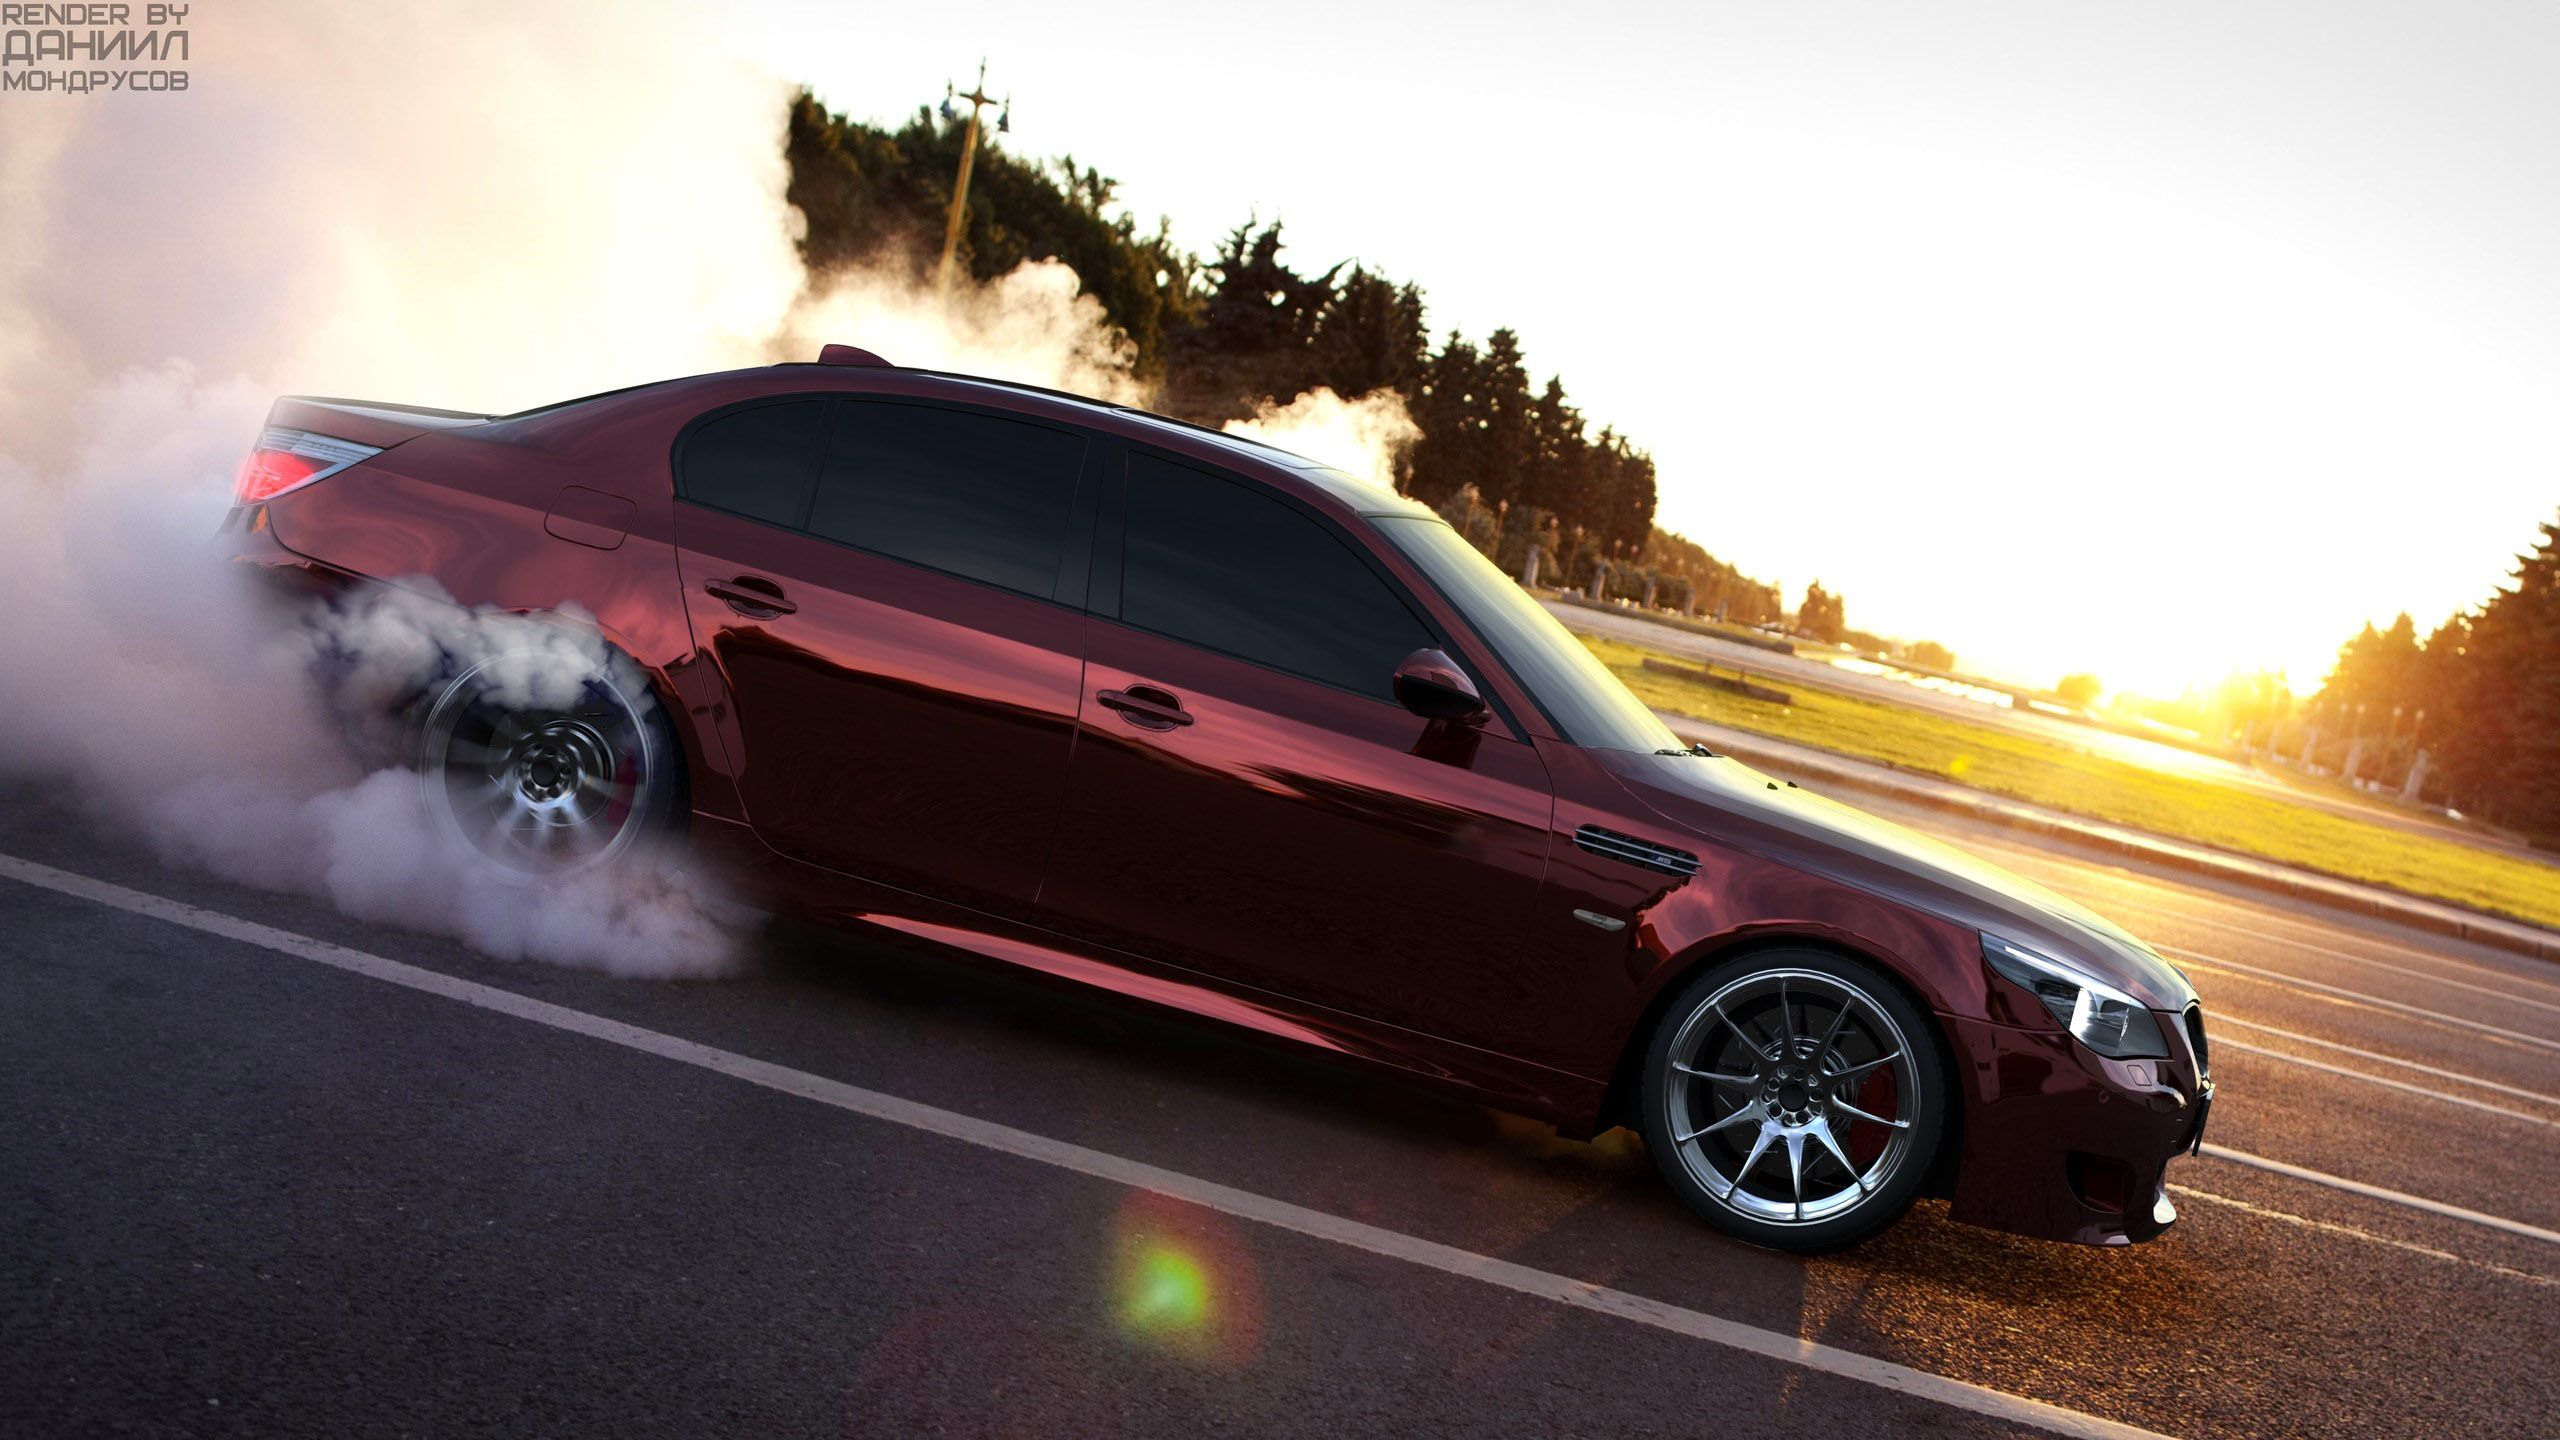 Bmw E60 M5 Wallpapers Http Hdwallpaperswide Co Bmw E60